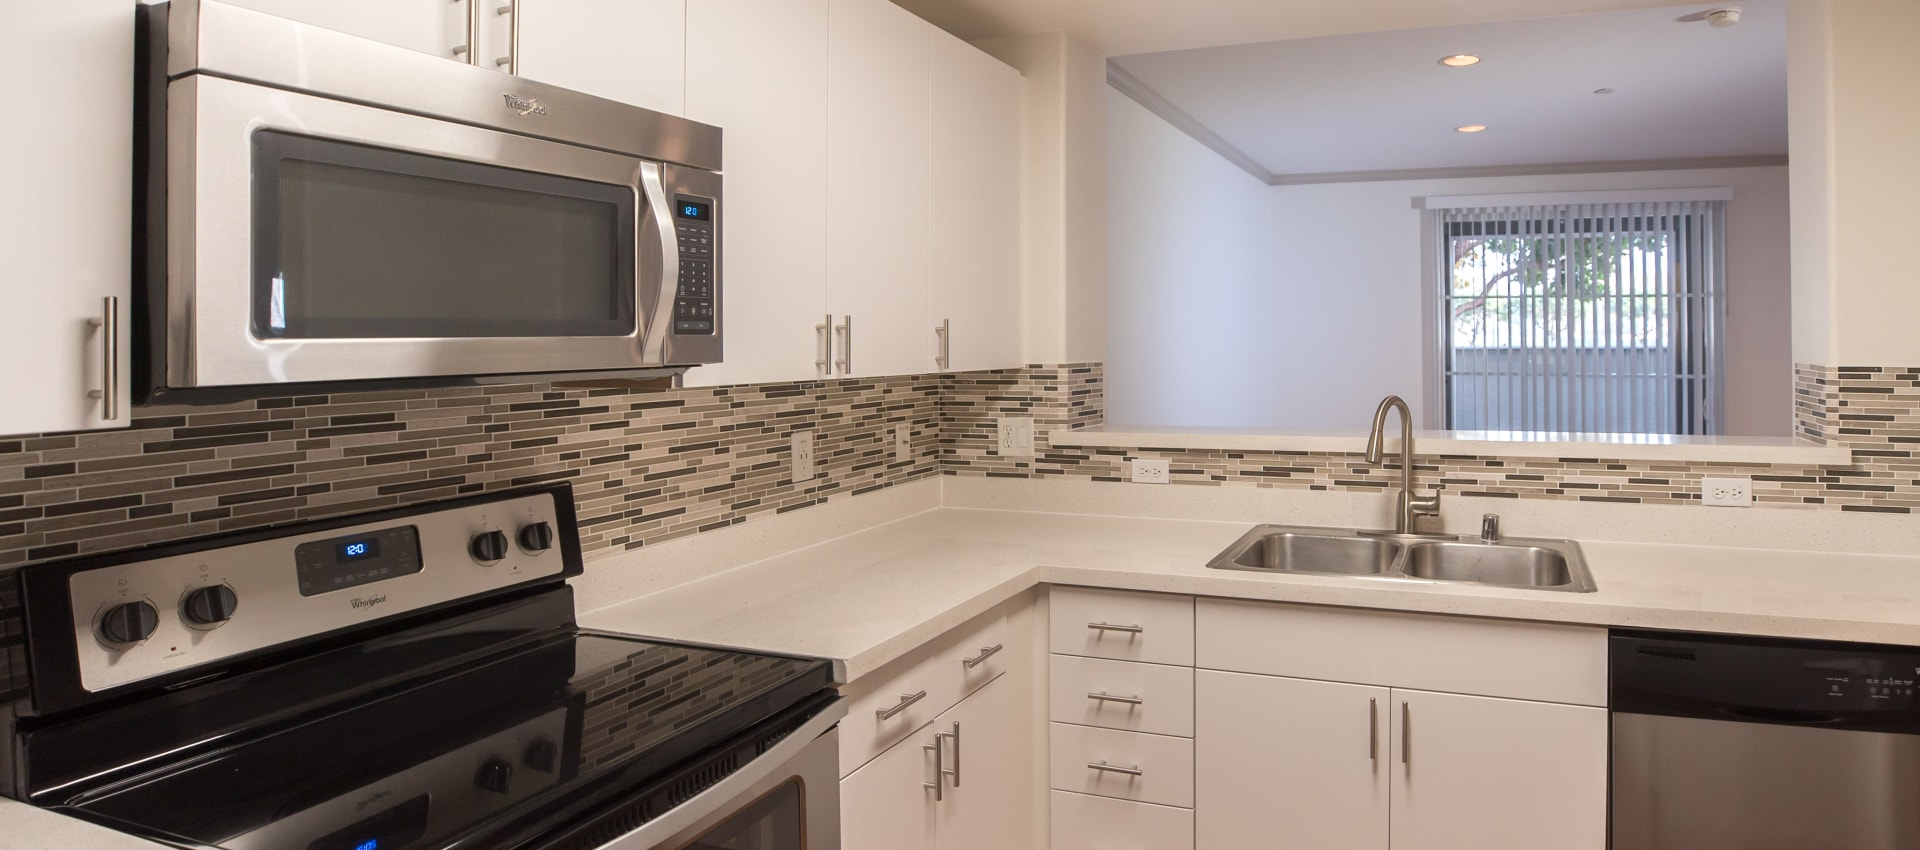 Stainless appliances in some units at Park Central in Concord, California